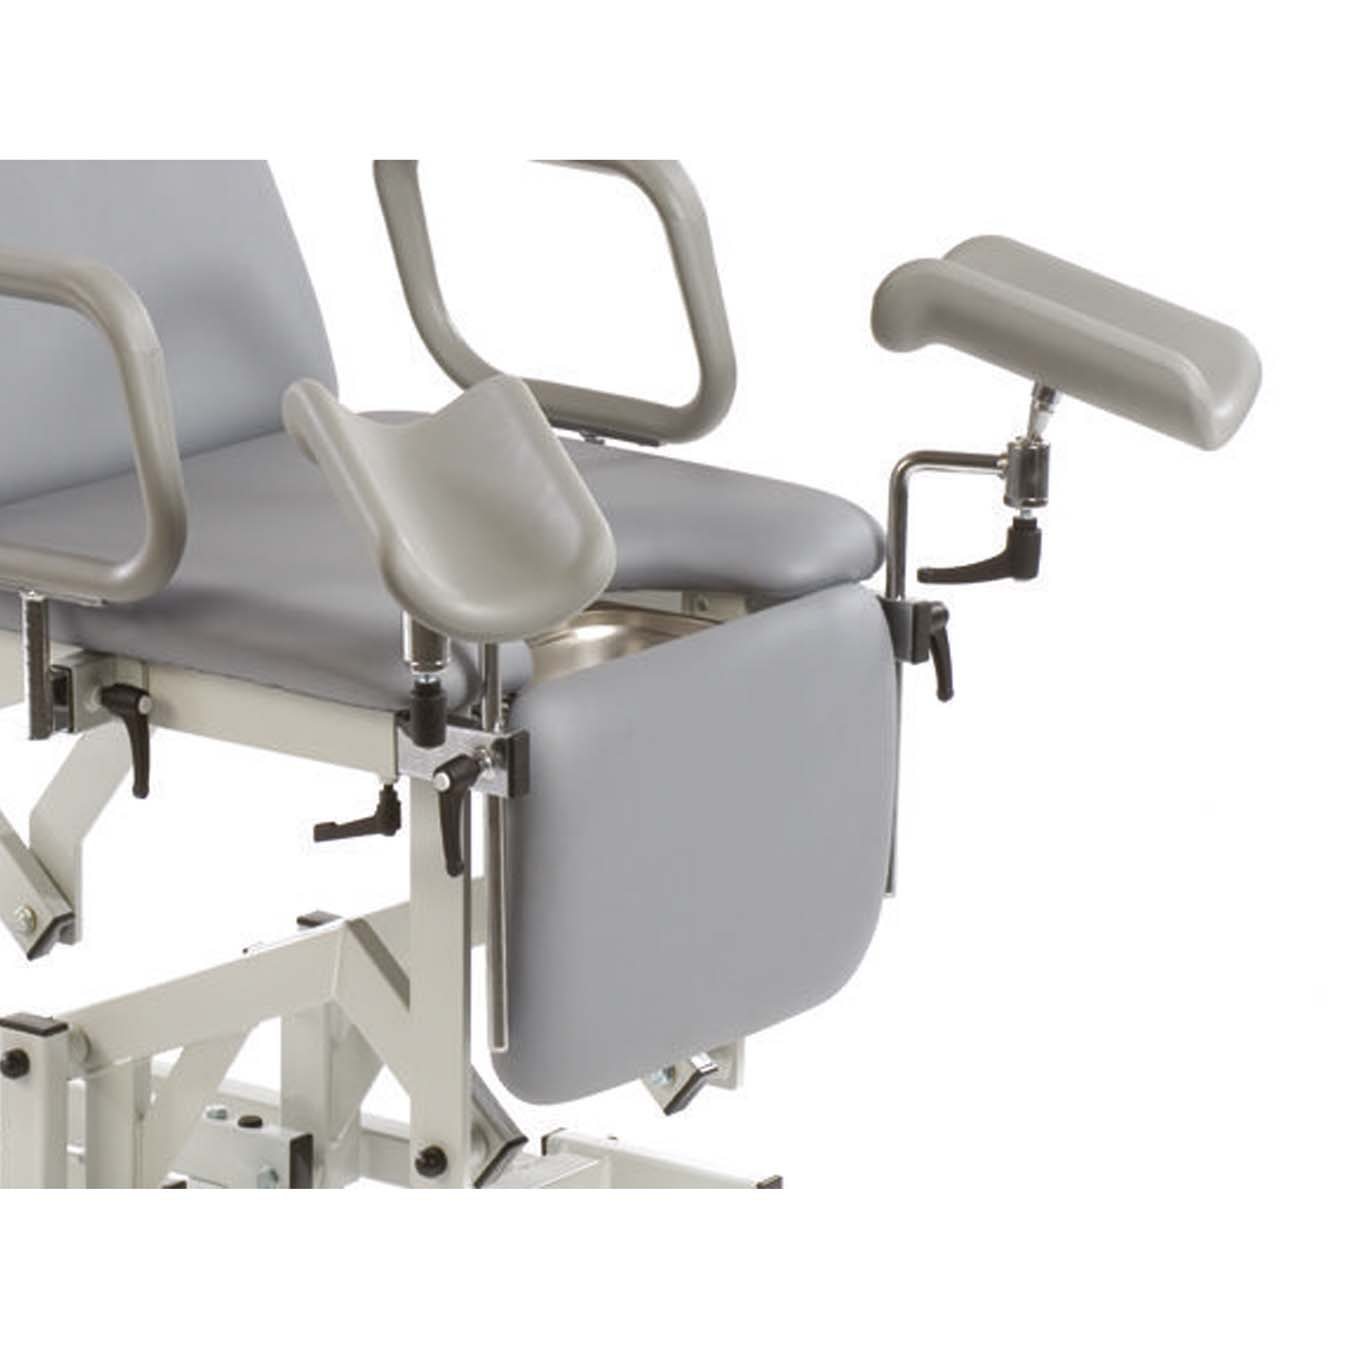 SM8563_2_Seers-Medicare-Gynaecology-Couch-Grey_1